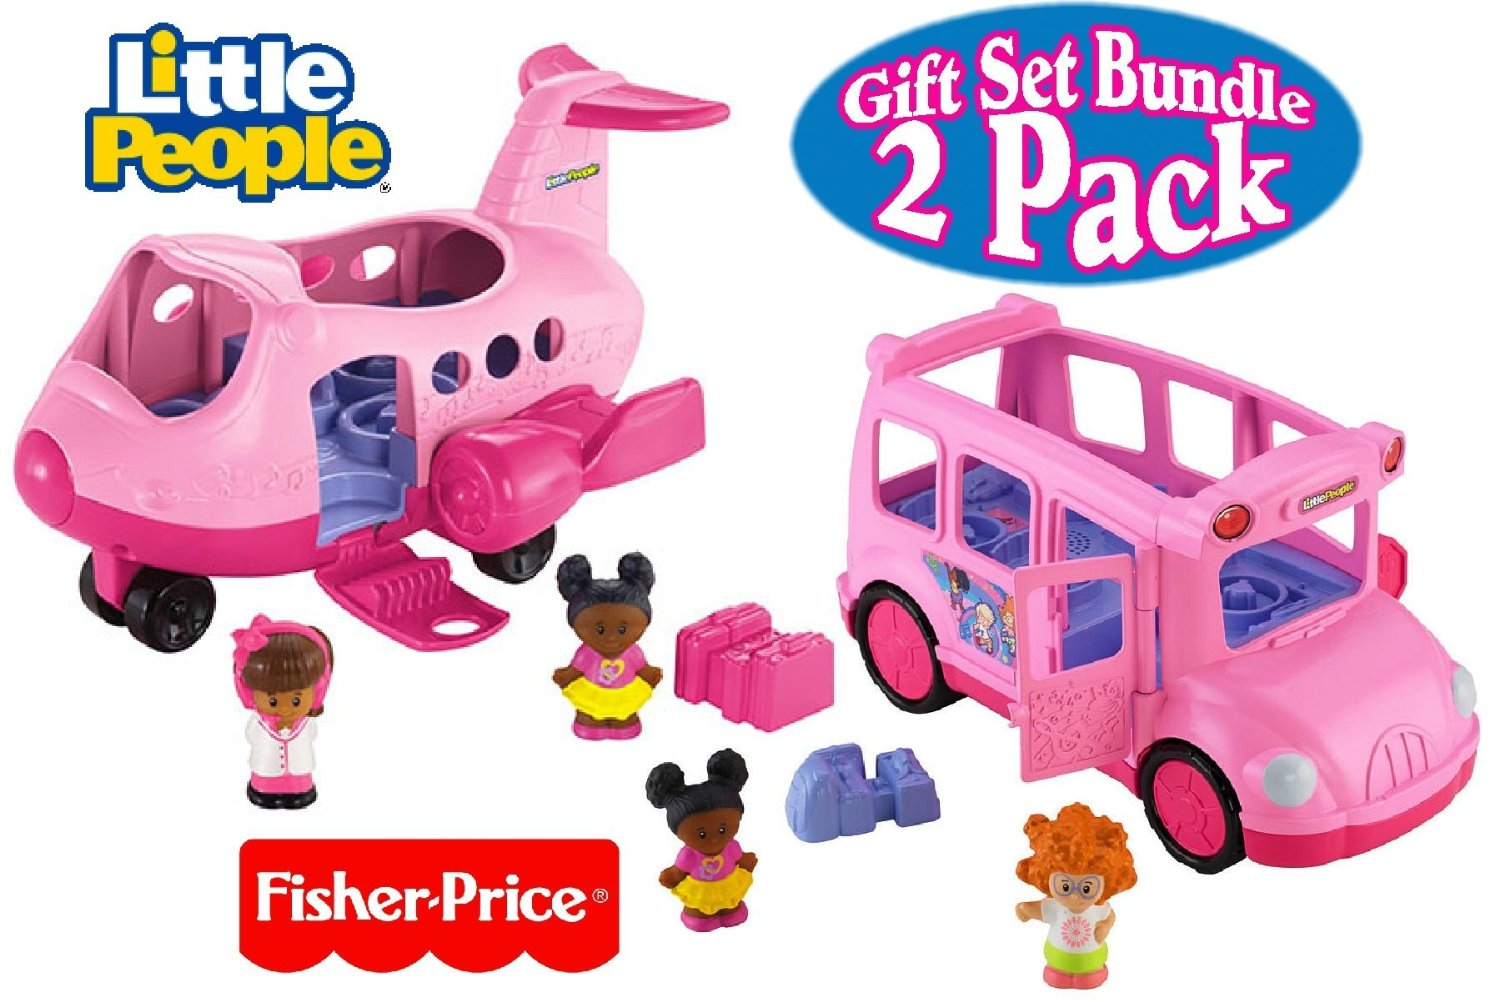 Fisher-Price Little People Lil' Movers (Sing-Along Song, Speech & Sounds) Pink Airplane & Pink School Bus Gift Set Bundle - 2 Pack